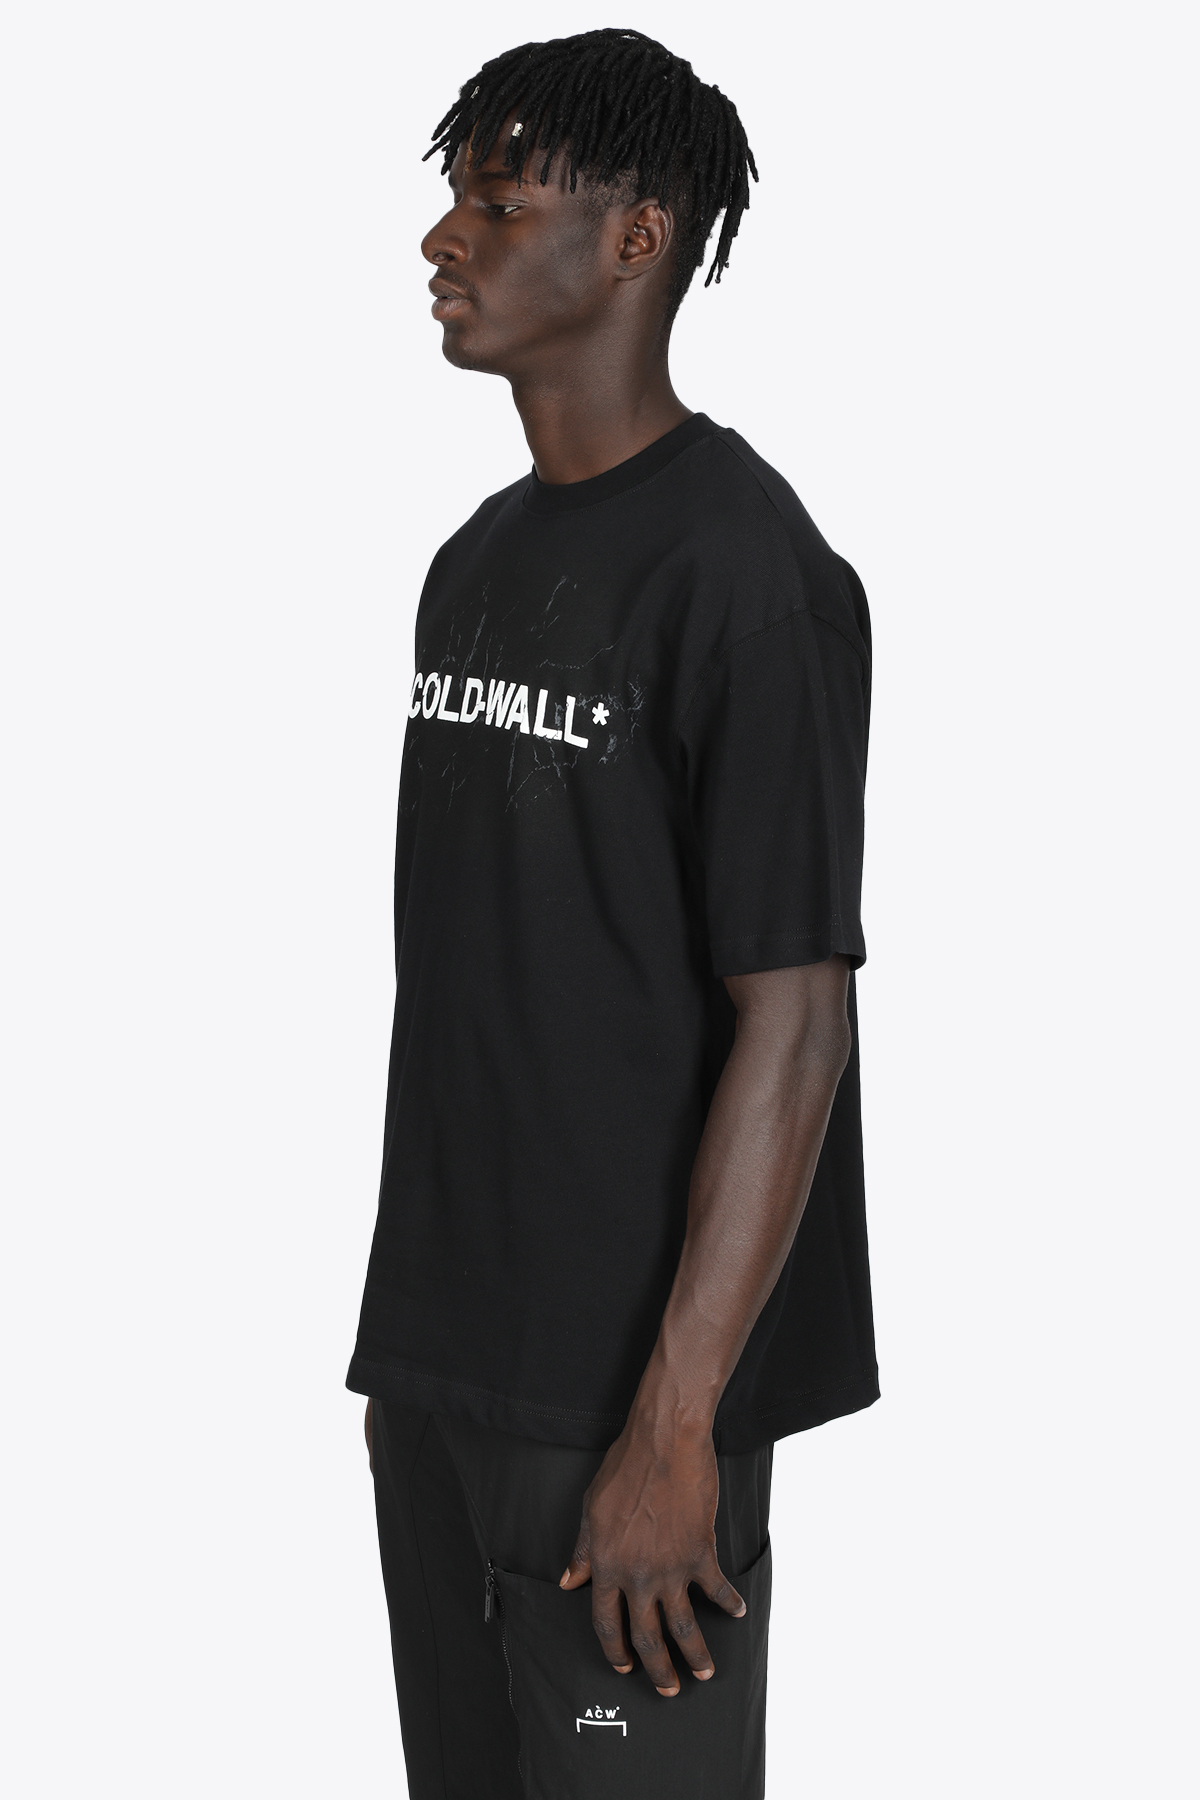 T-SHIRT IN COTONE NERA CON LOGO A COLD WALL | 8 | ACWMTS045 LOGO SS T-SHIRTBLACK